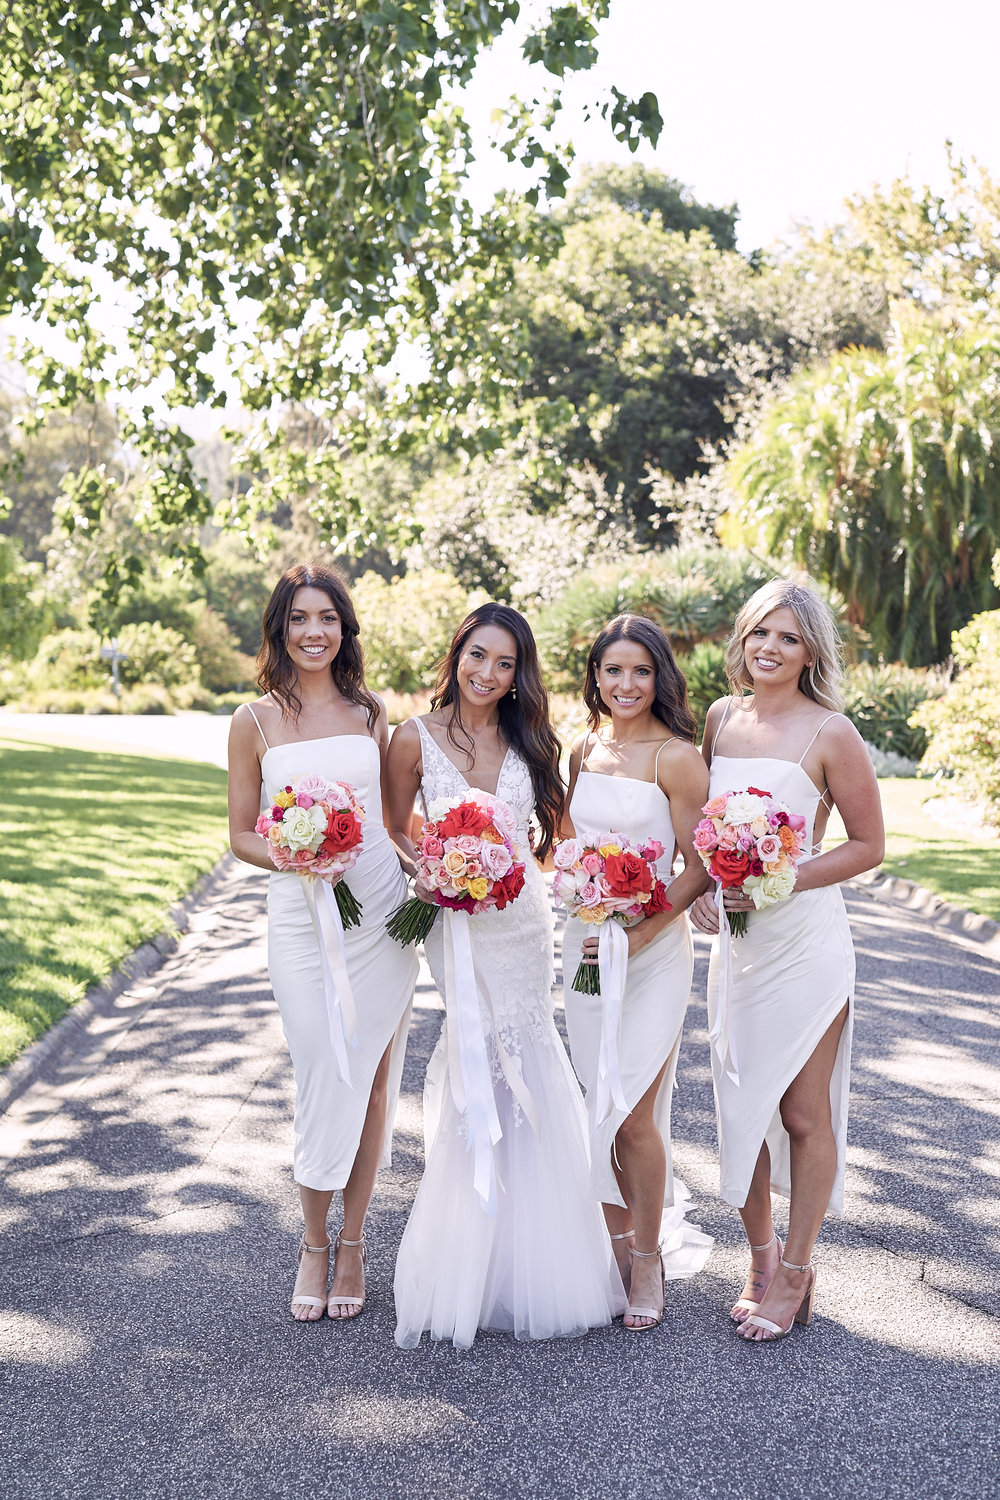 Melbourne botanical garden wedding bridal party photo by lost in love photography